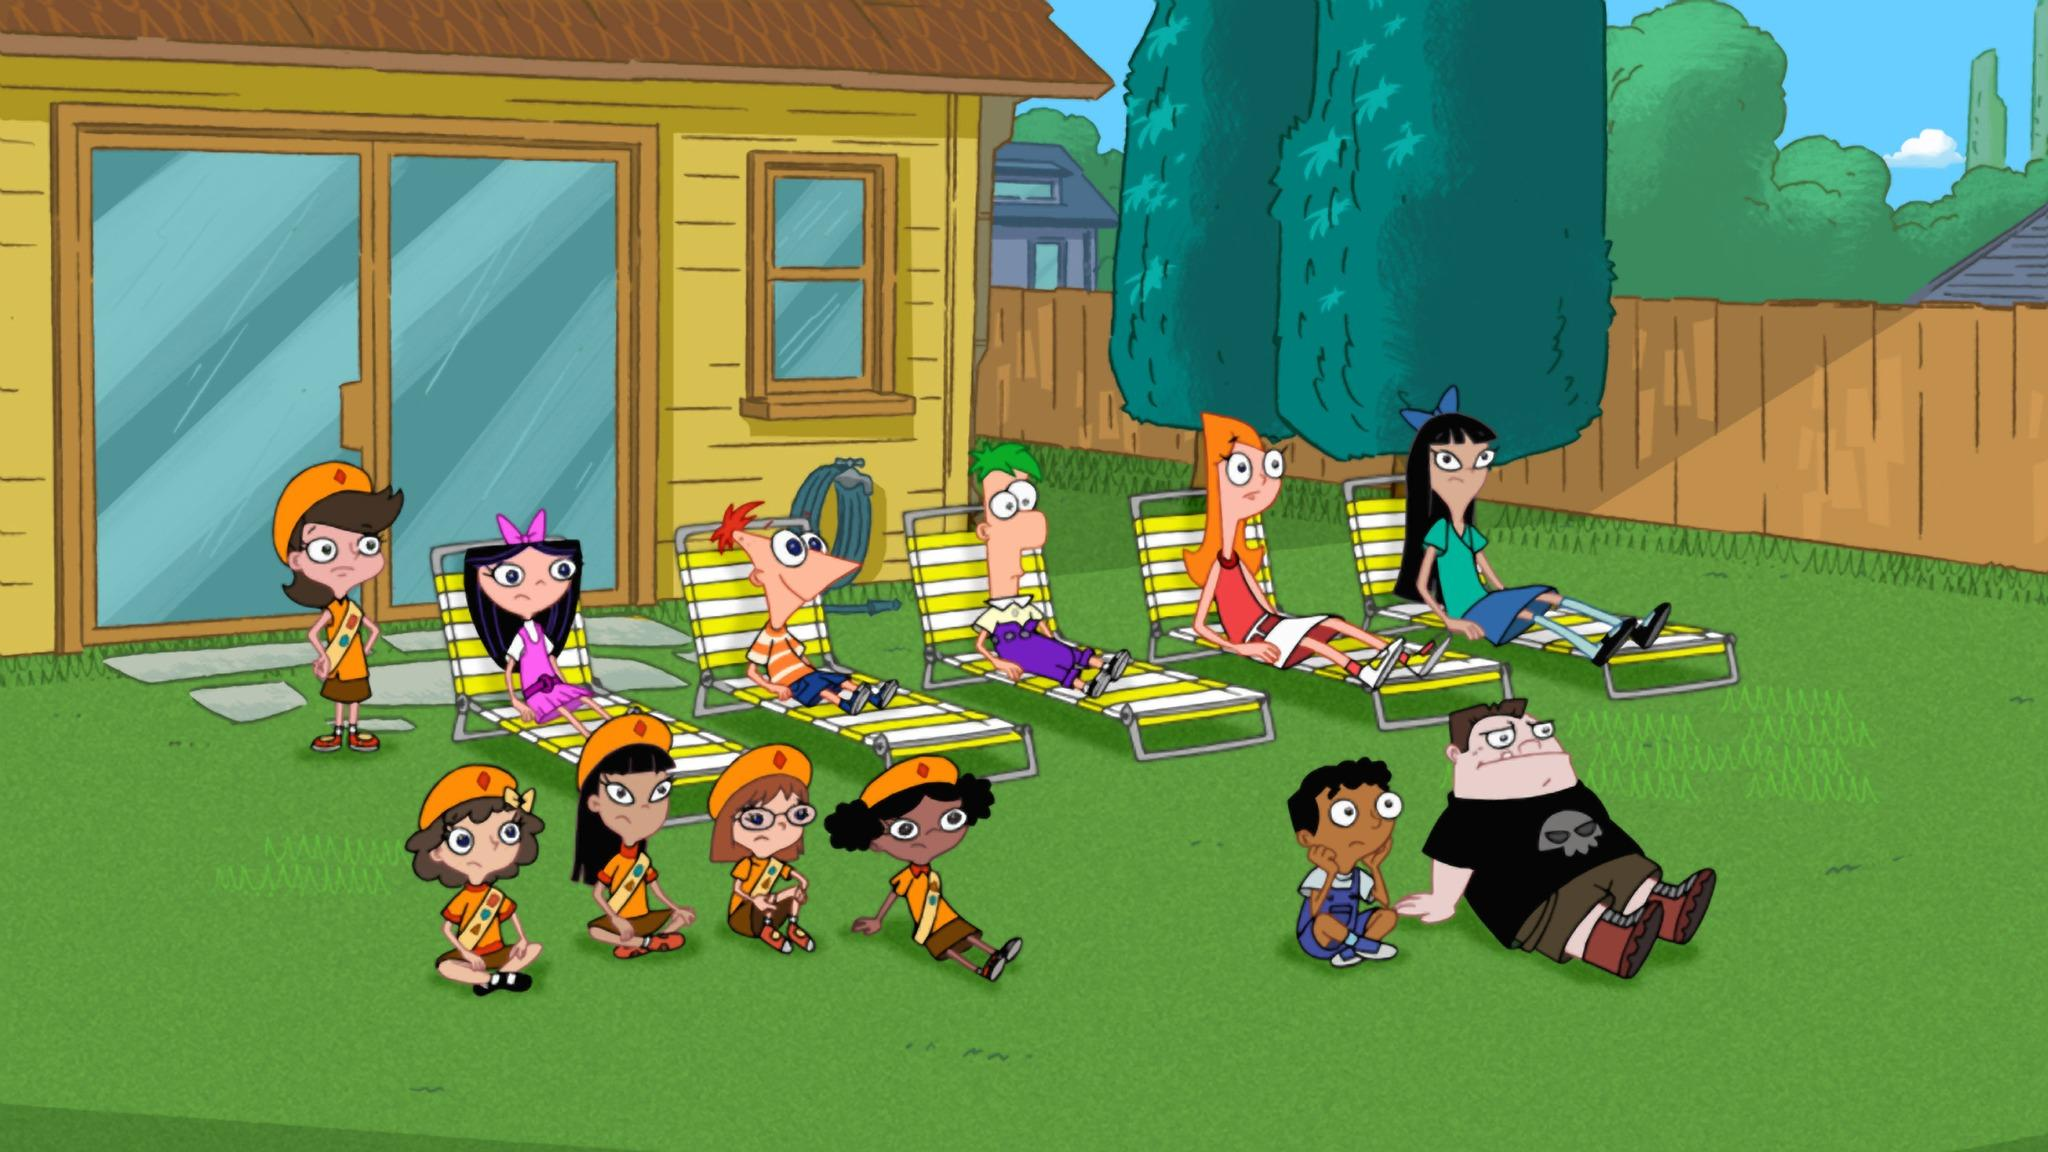 Majesco and Disney Interactive Partner for New Phineas and Ferb Game